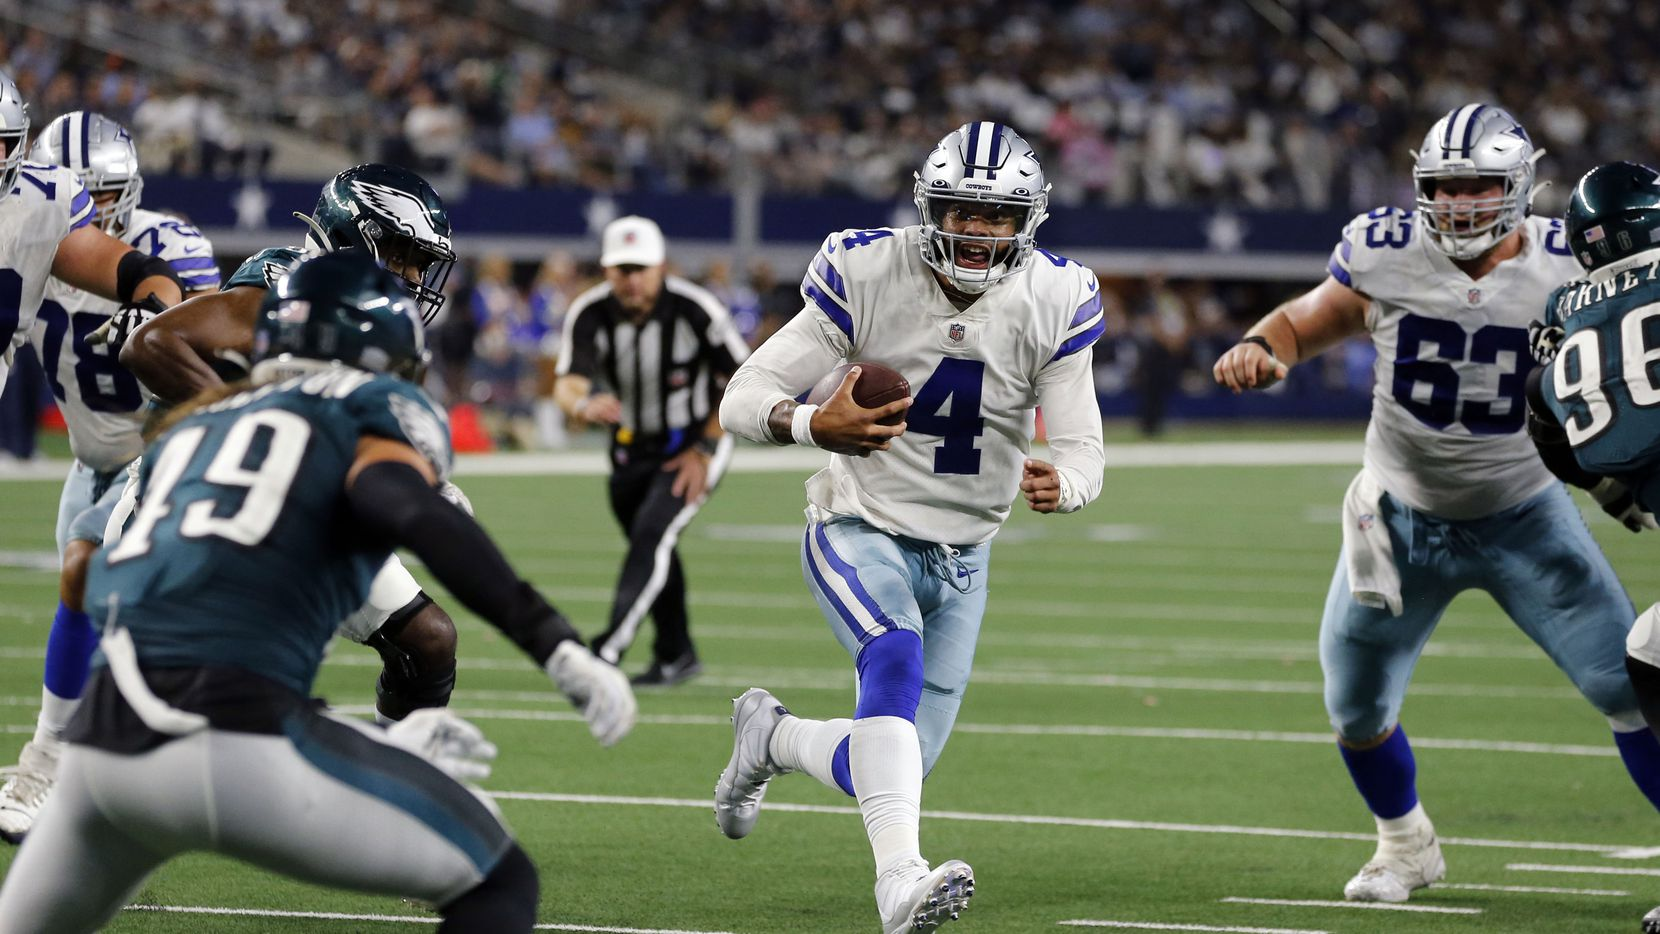 Dallas Cowboys quarterback Dak Prescott (4) scrambles to the two-yard-line during the second half of a NFL football game against the Philadelphia Eagles High at AT&T Stadium in Arlington on Monday, September 27, 2021.